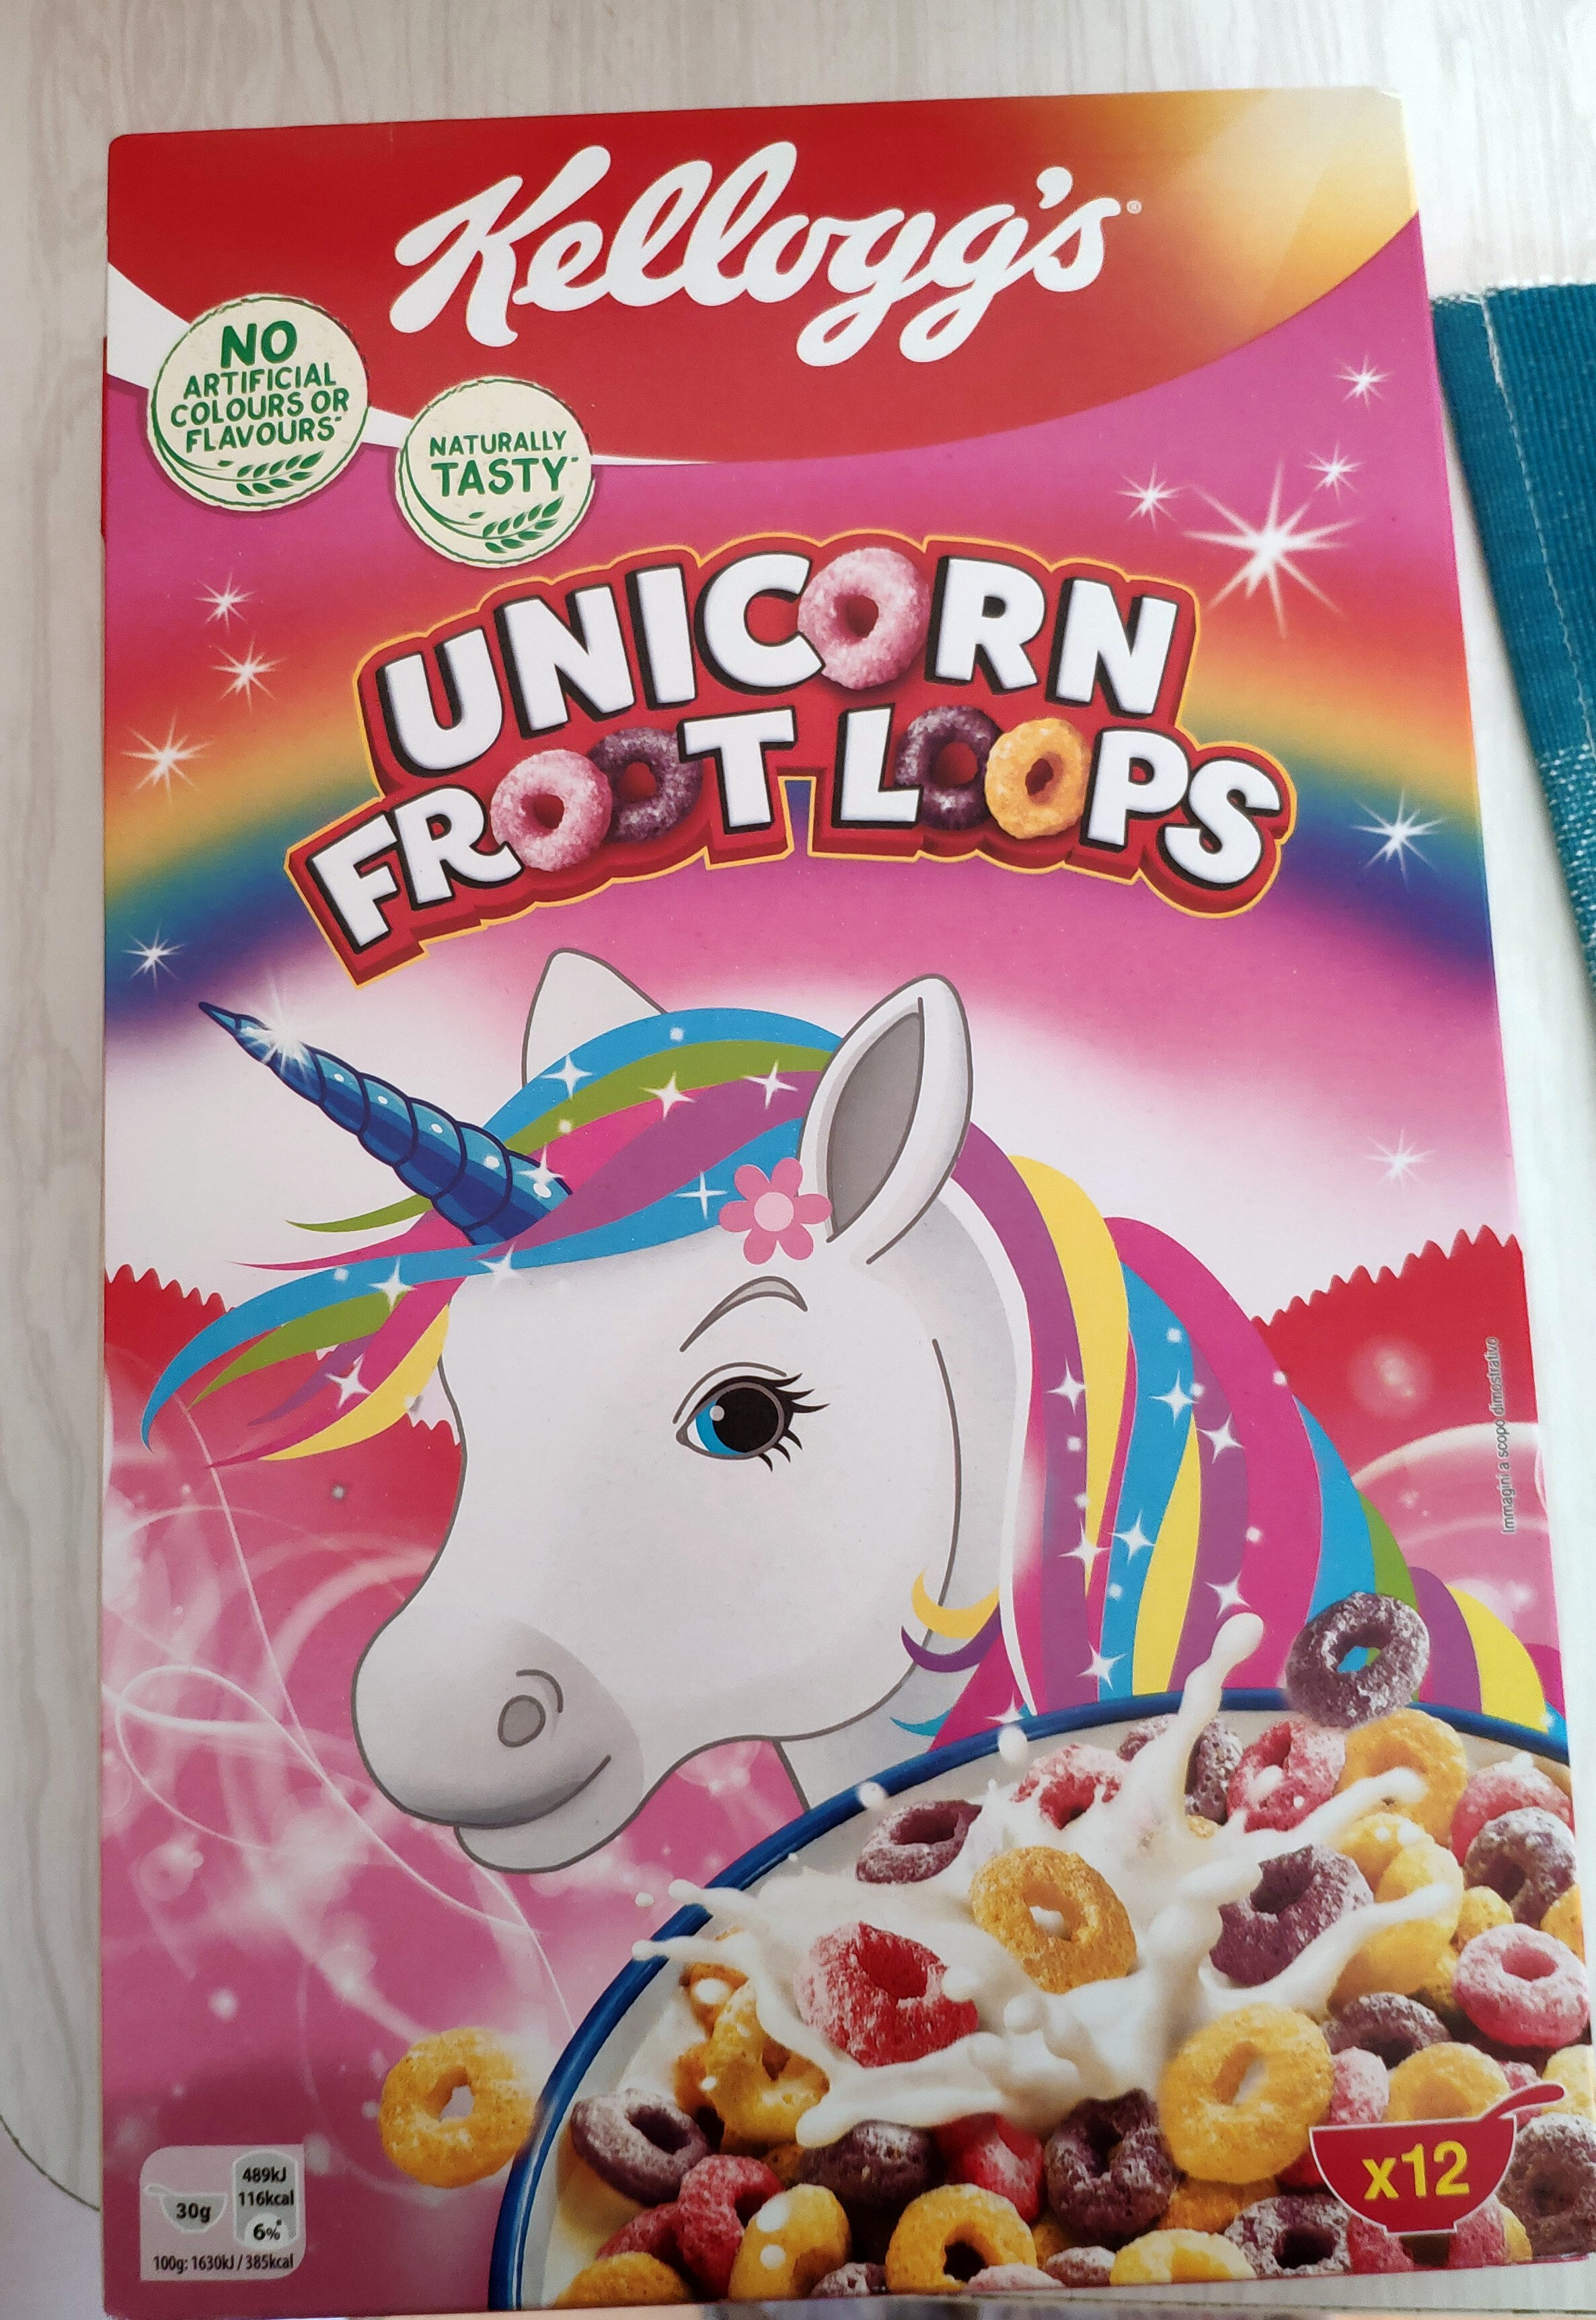 Unicorn froot loops - Product - nl